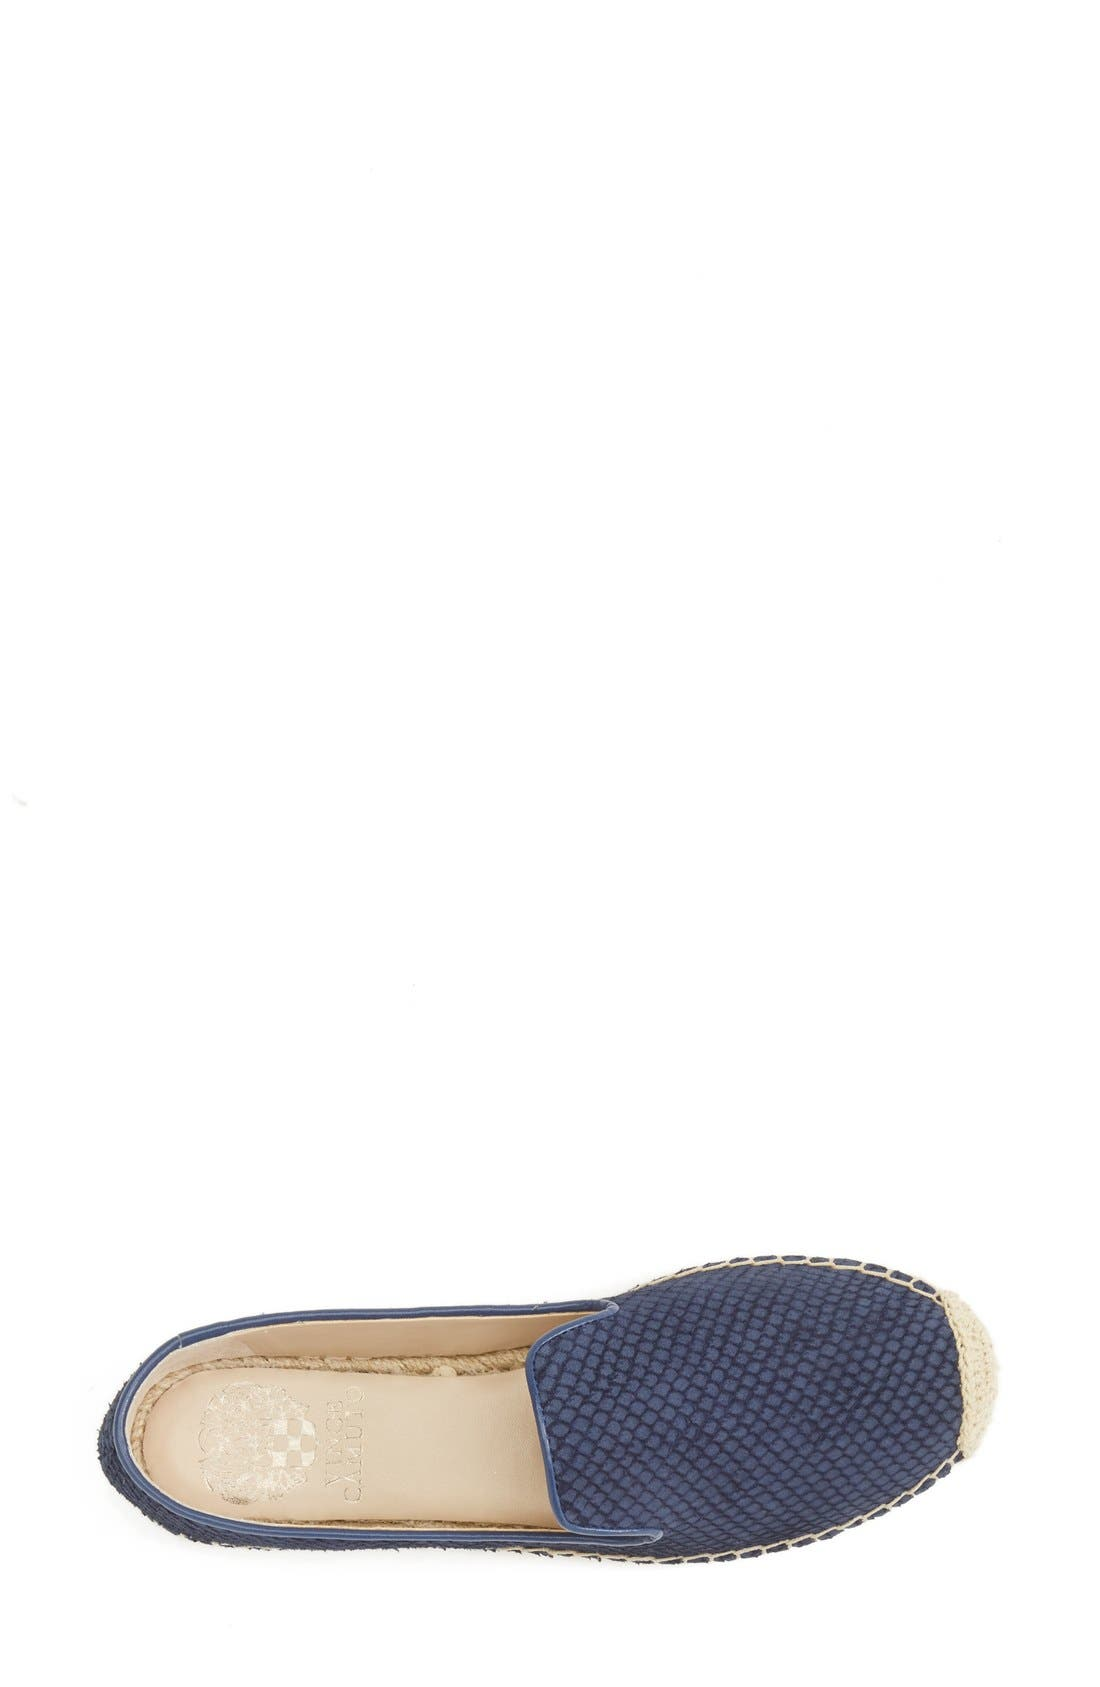 Alternate Image 3  - Vince Camuto 'Driston' Espadrille Flat (Women)